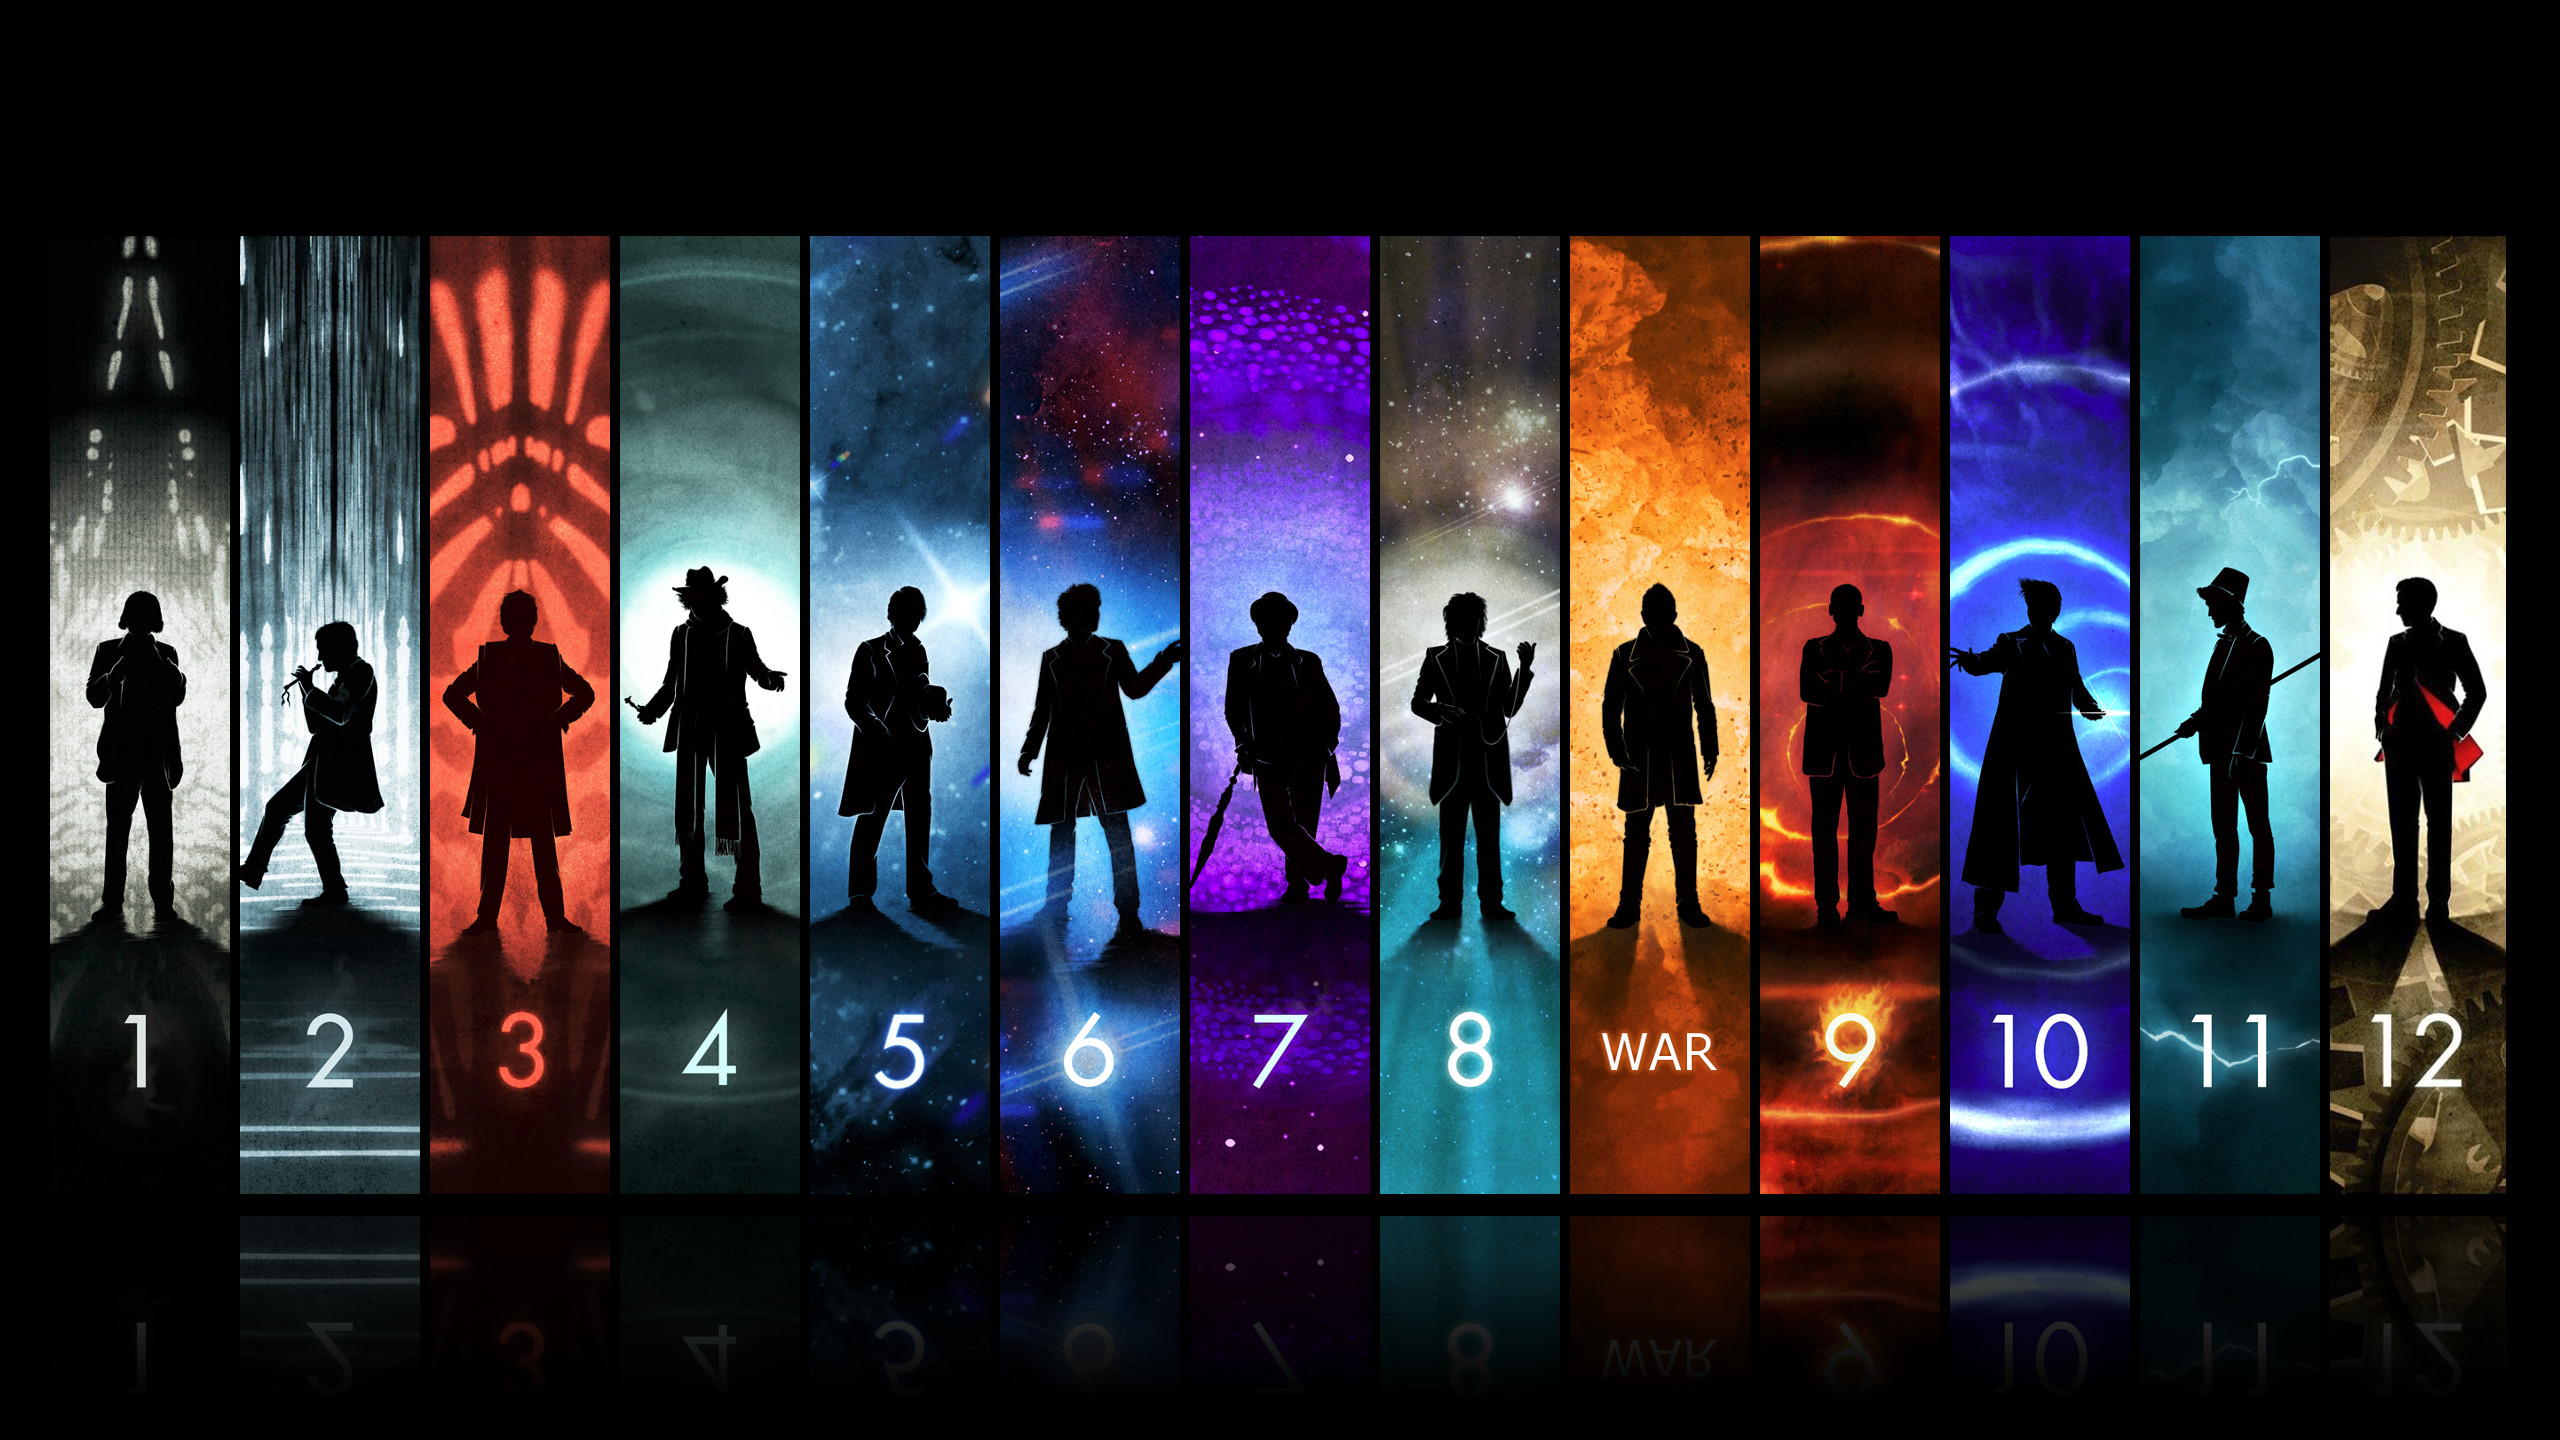 2560x1440 Doctor Who Wallpaper All Doctors 50th anniversary doctors 0 HTML code. Share